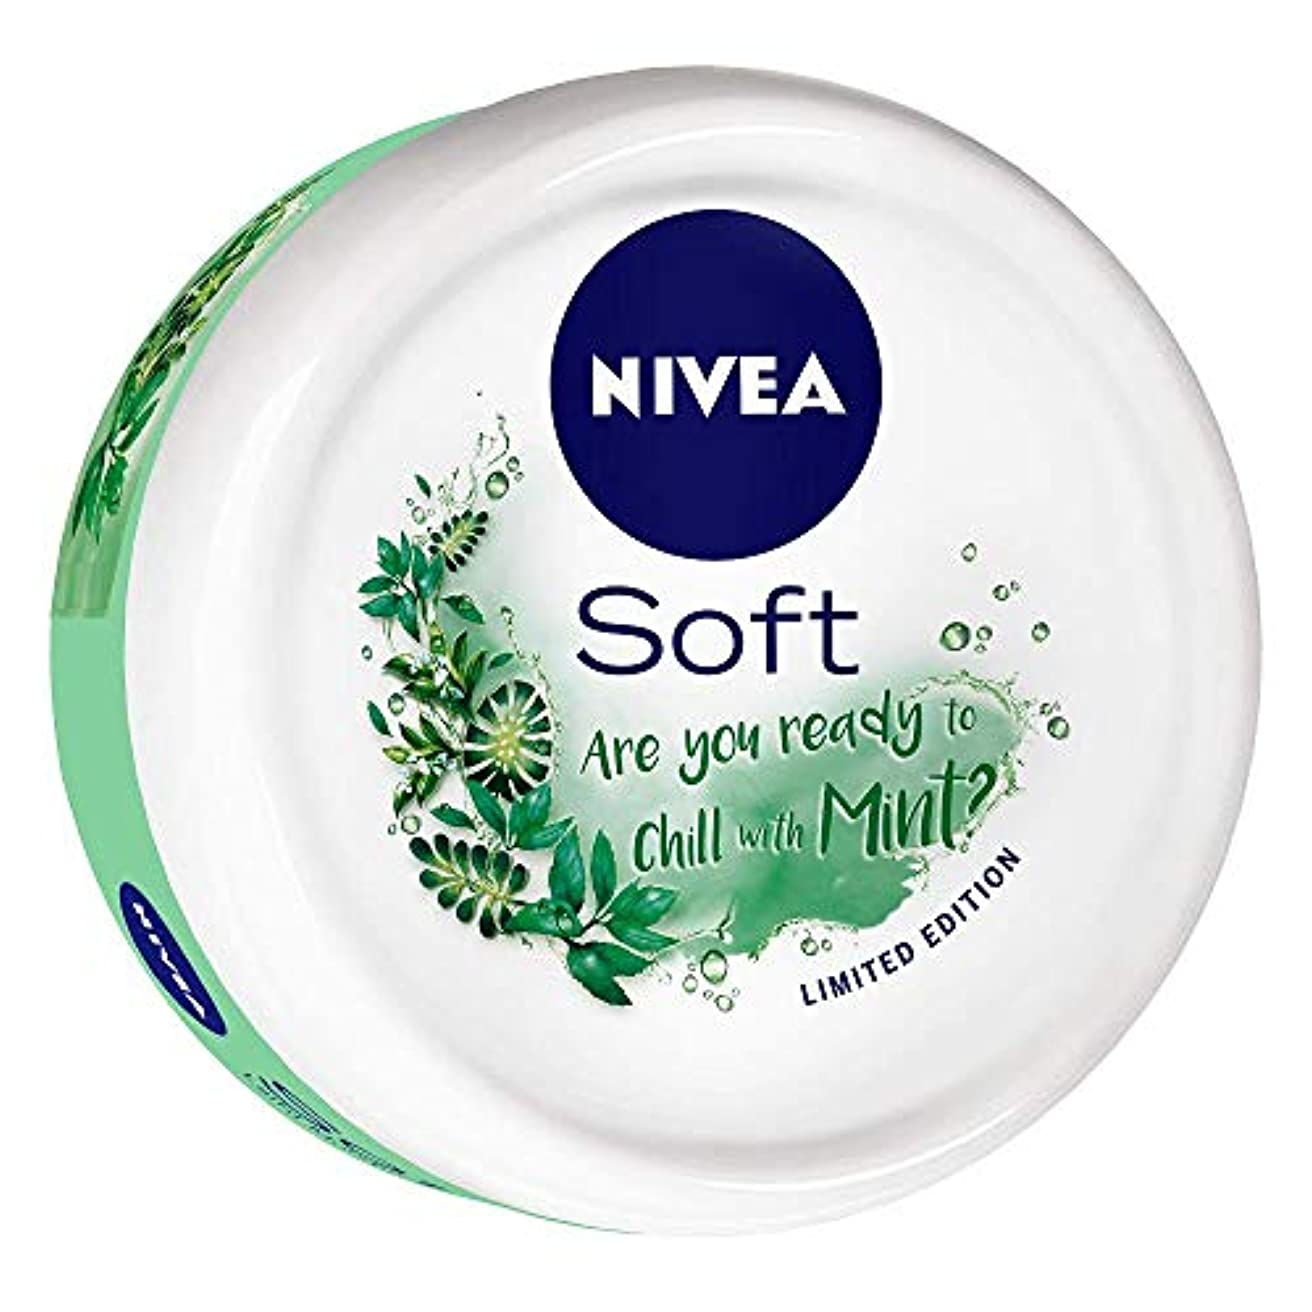 評価可能ぬるい便利さNIVEA Soft Light Moisturizer Chilled Mint With Vitamin E & Jojoba Oil, 200 ml